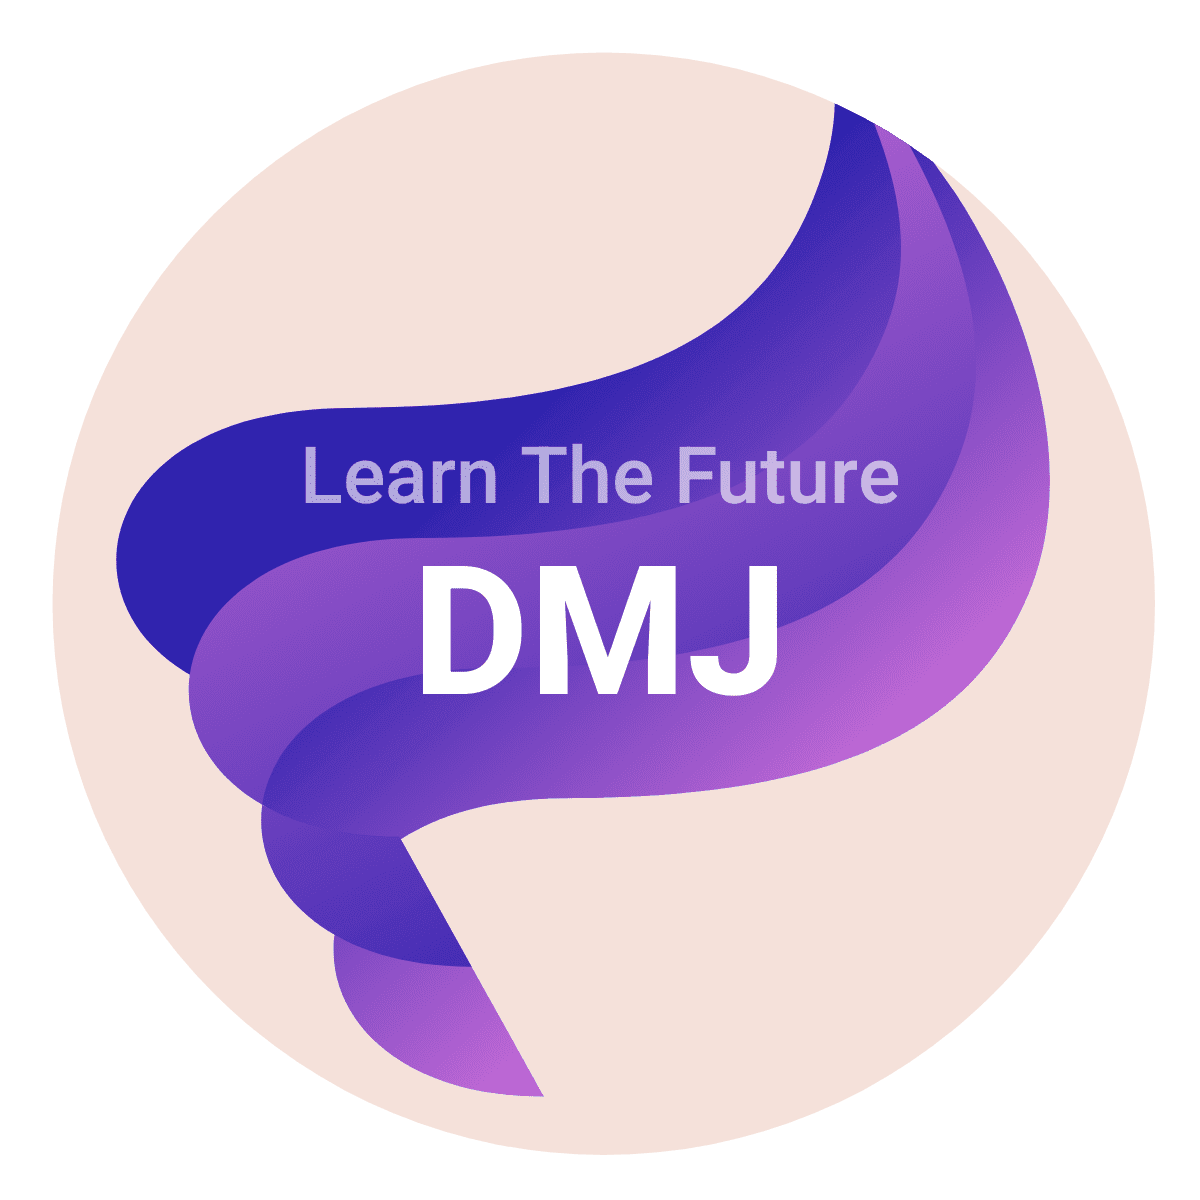 Digital Marketing Journal - Learn The Future